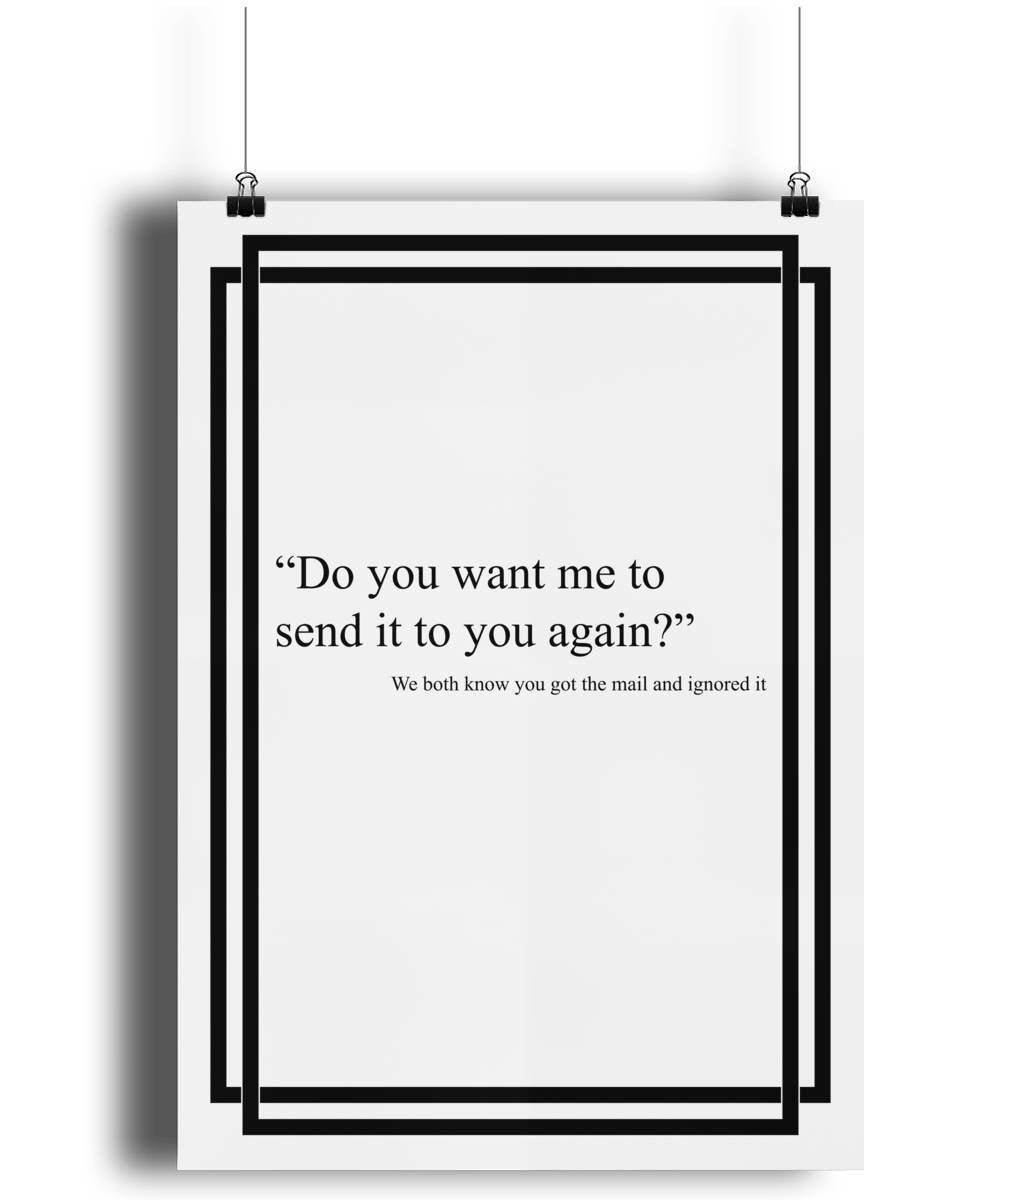 Email Lingo - Do You Want Me To Send It To You Again Poster #etsy #officehumour #funny #rude #art #office Available in different sizes